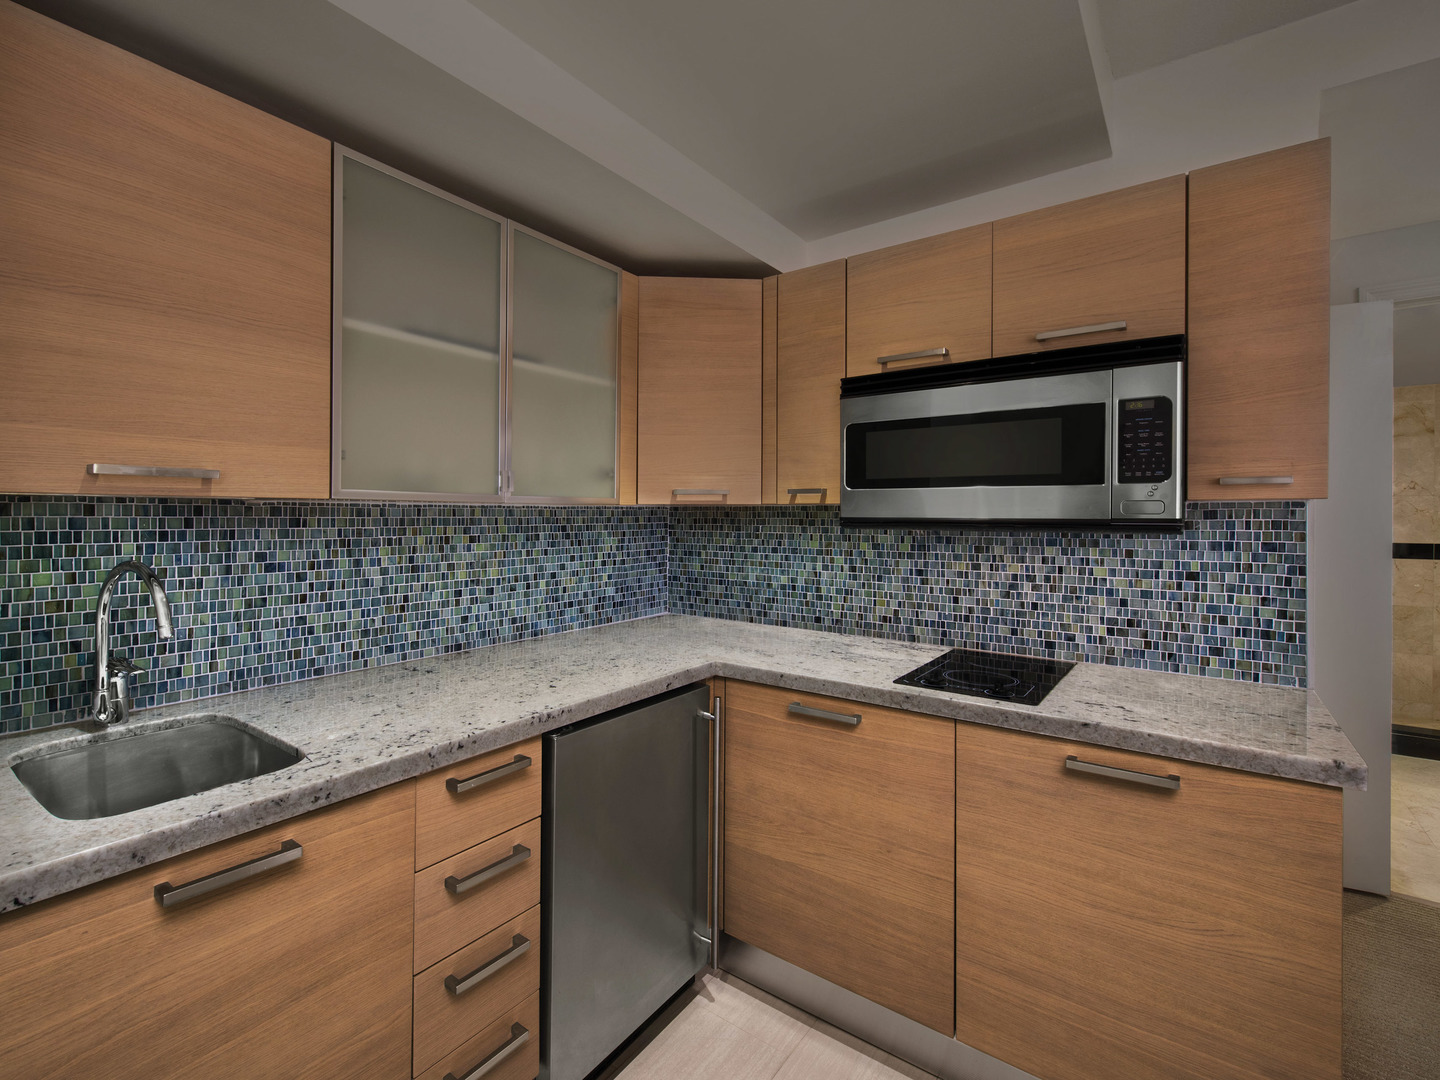 Marriott Vacation Club Pulse<span class='trademark'>®</span>, South Beach 2-Bedroom Suite Kitchen. Marriott Vacation Club Pulse<span class='trademark'>®</span>, South Beach is located in Miami Beach, Florida United States.